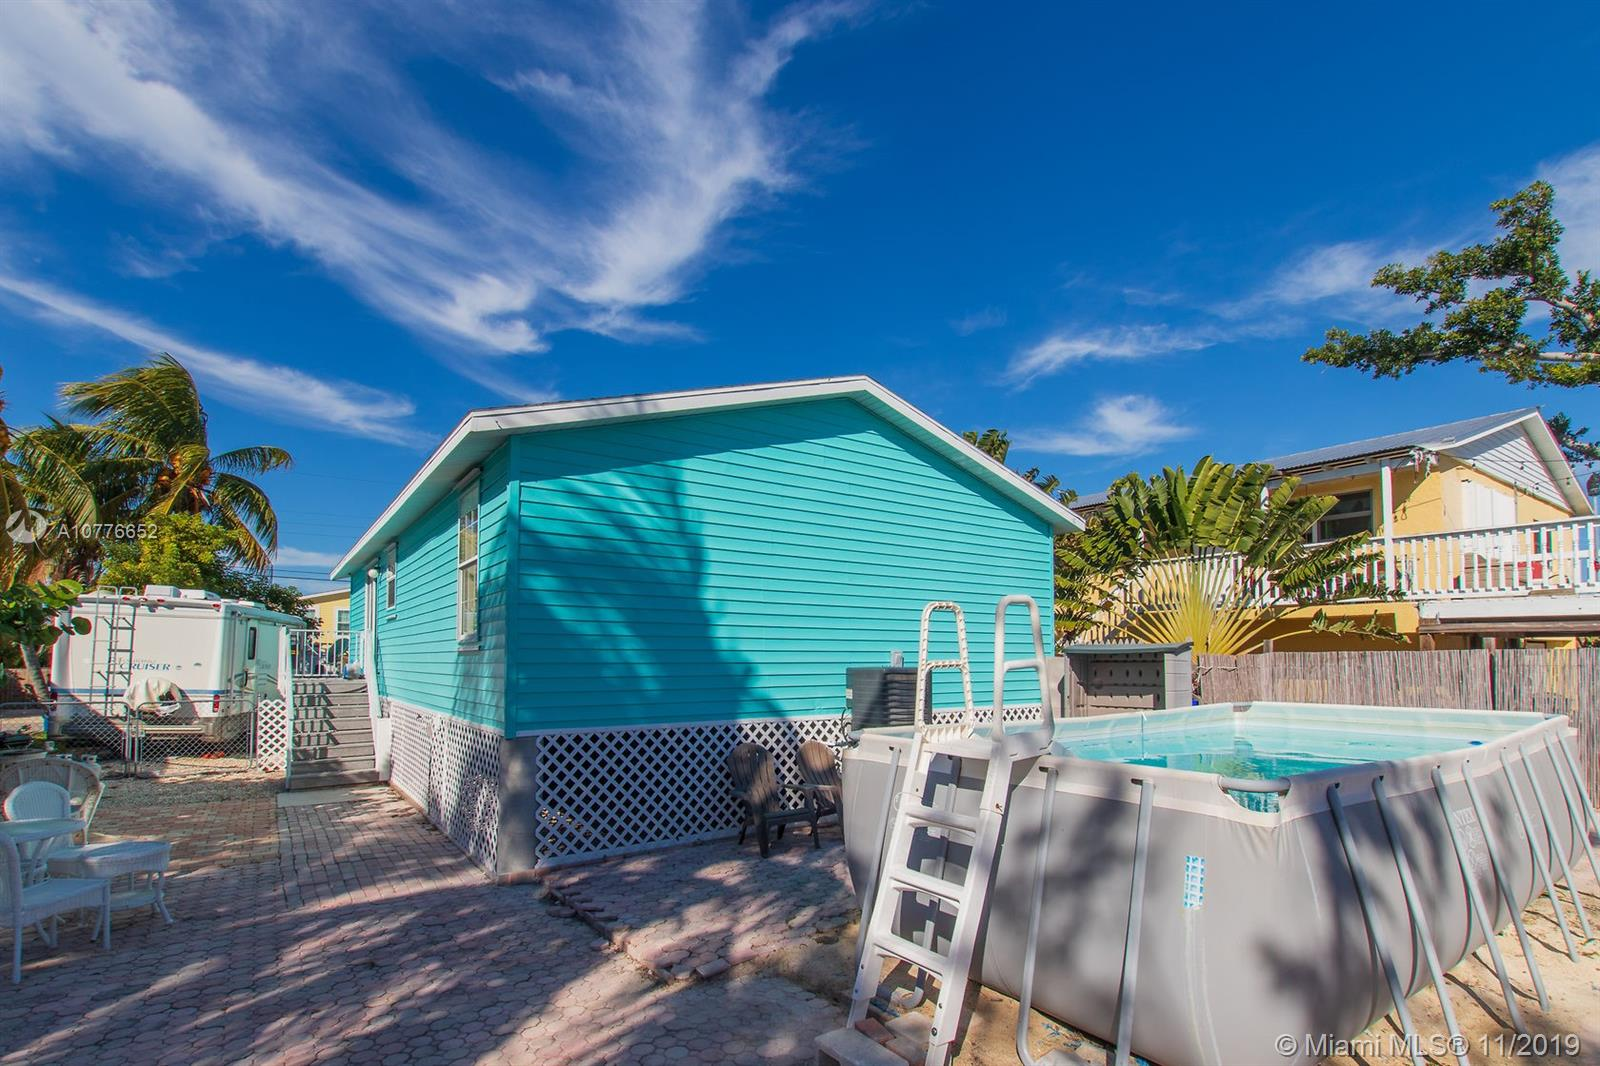 904 66th Street Ocean, Other City - Keys/Islands/Caribb, FL 33050 - Other City - Keys/Islands/Caribb, FL real estate listing